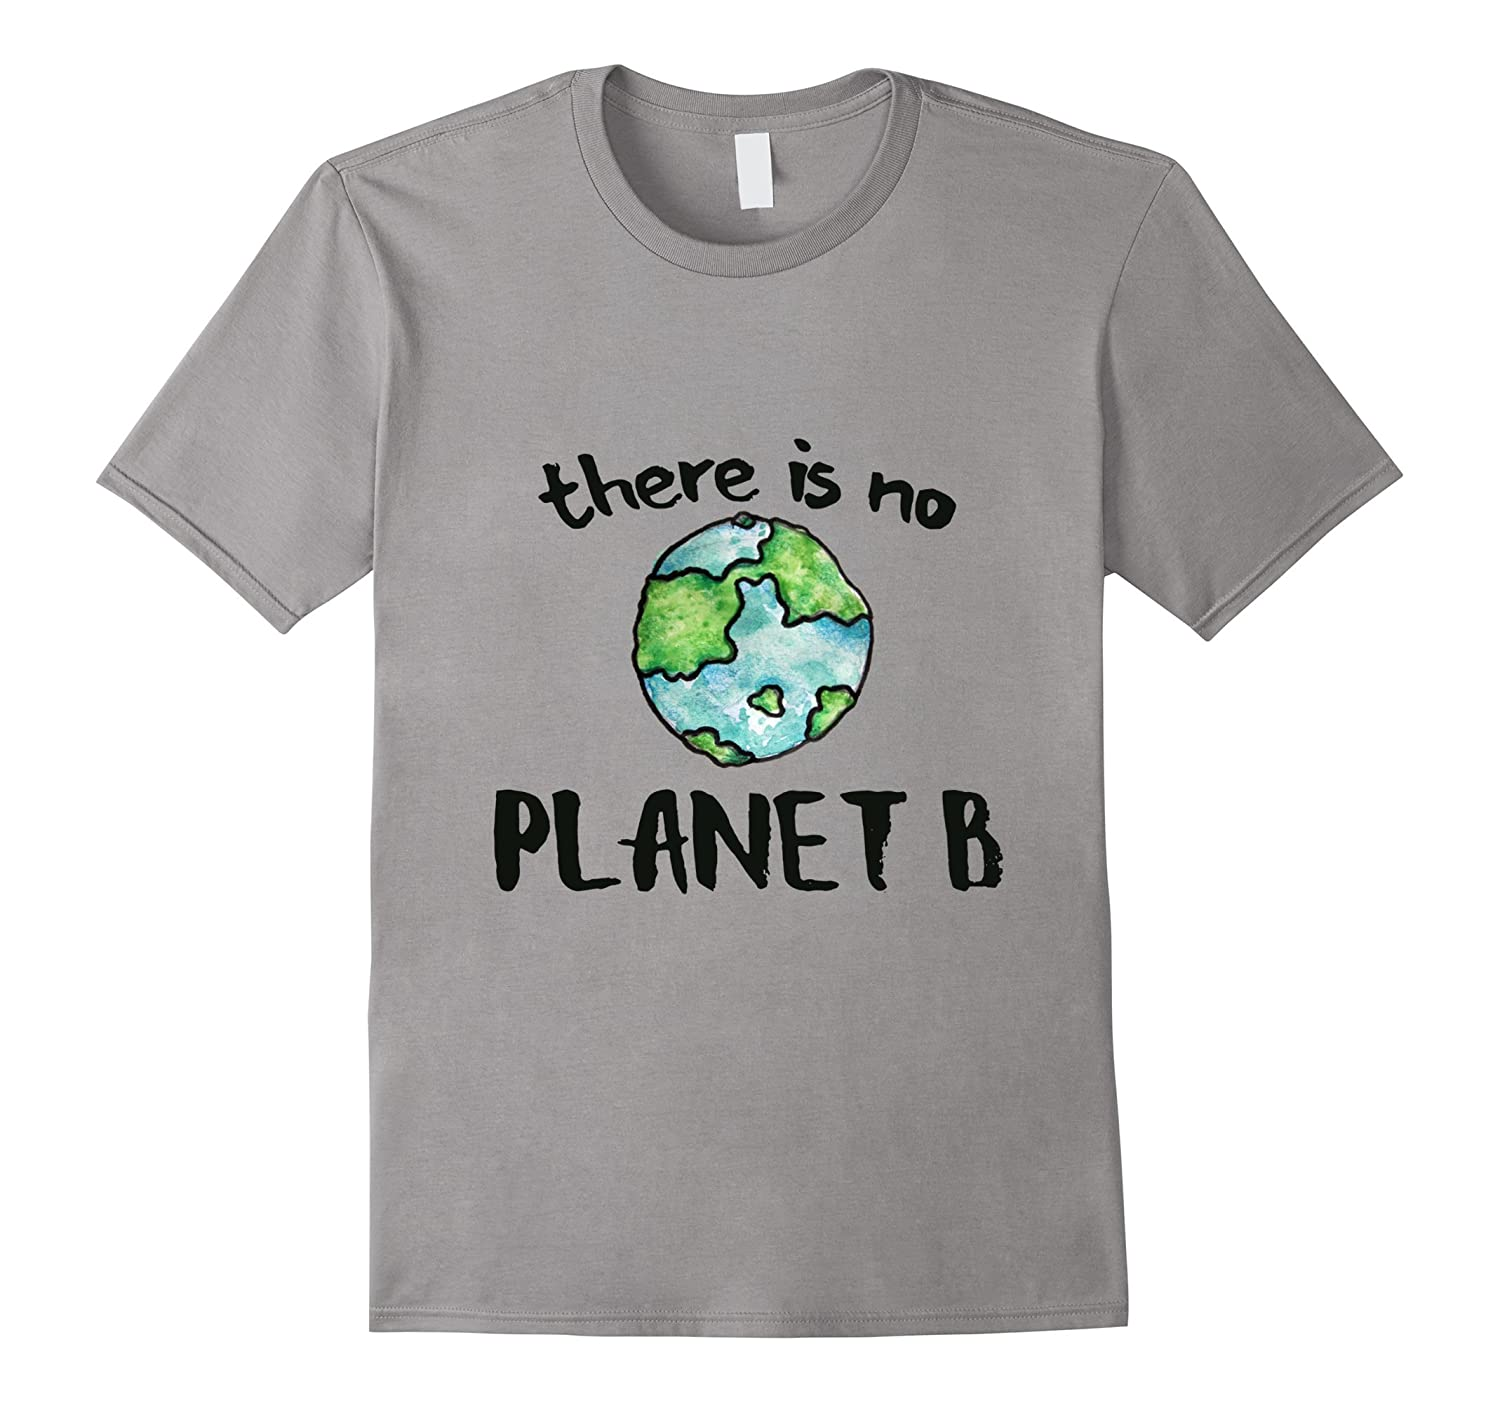 There is no planet B shirt Earth Day tee shirts-CD